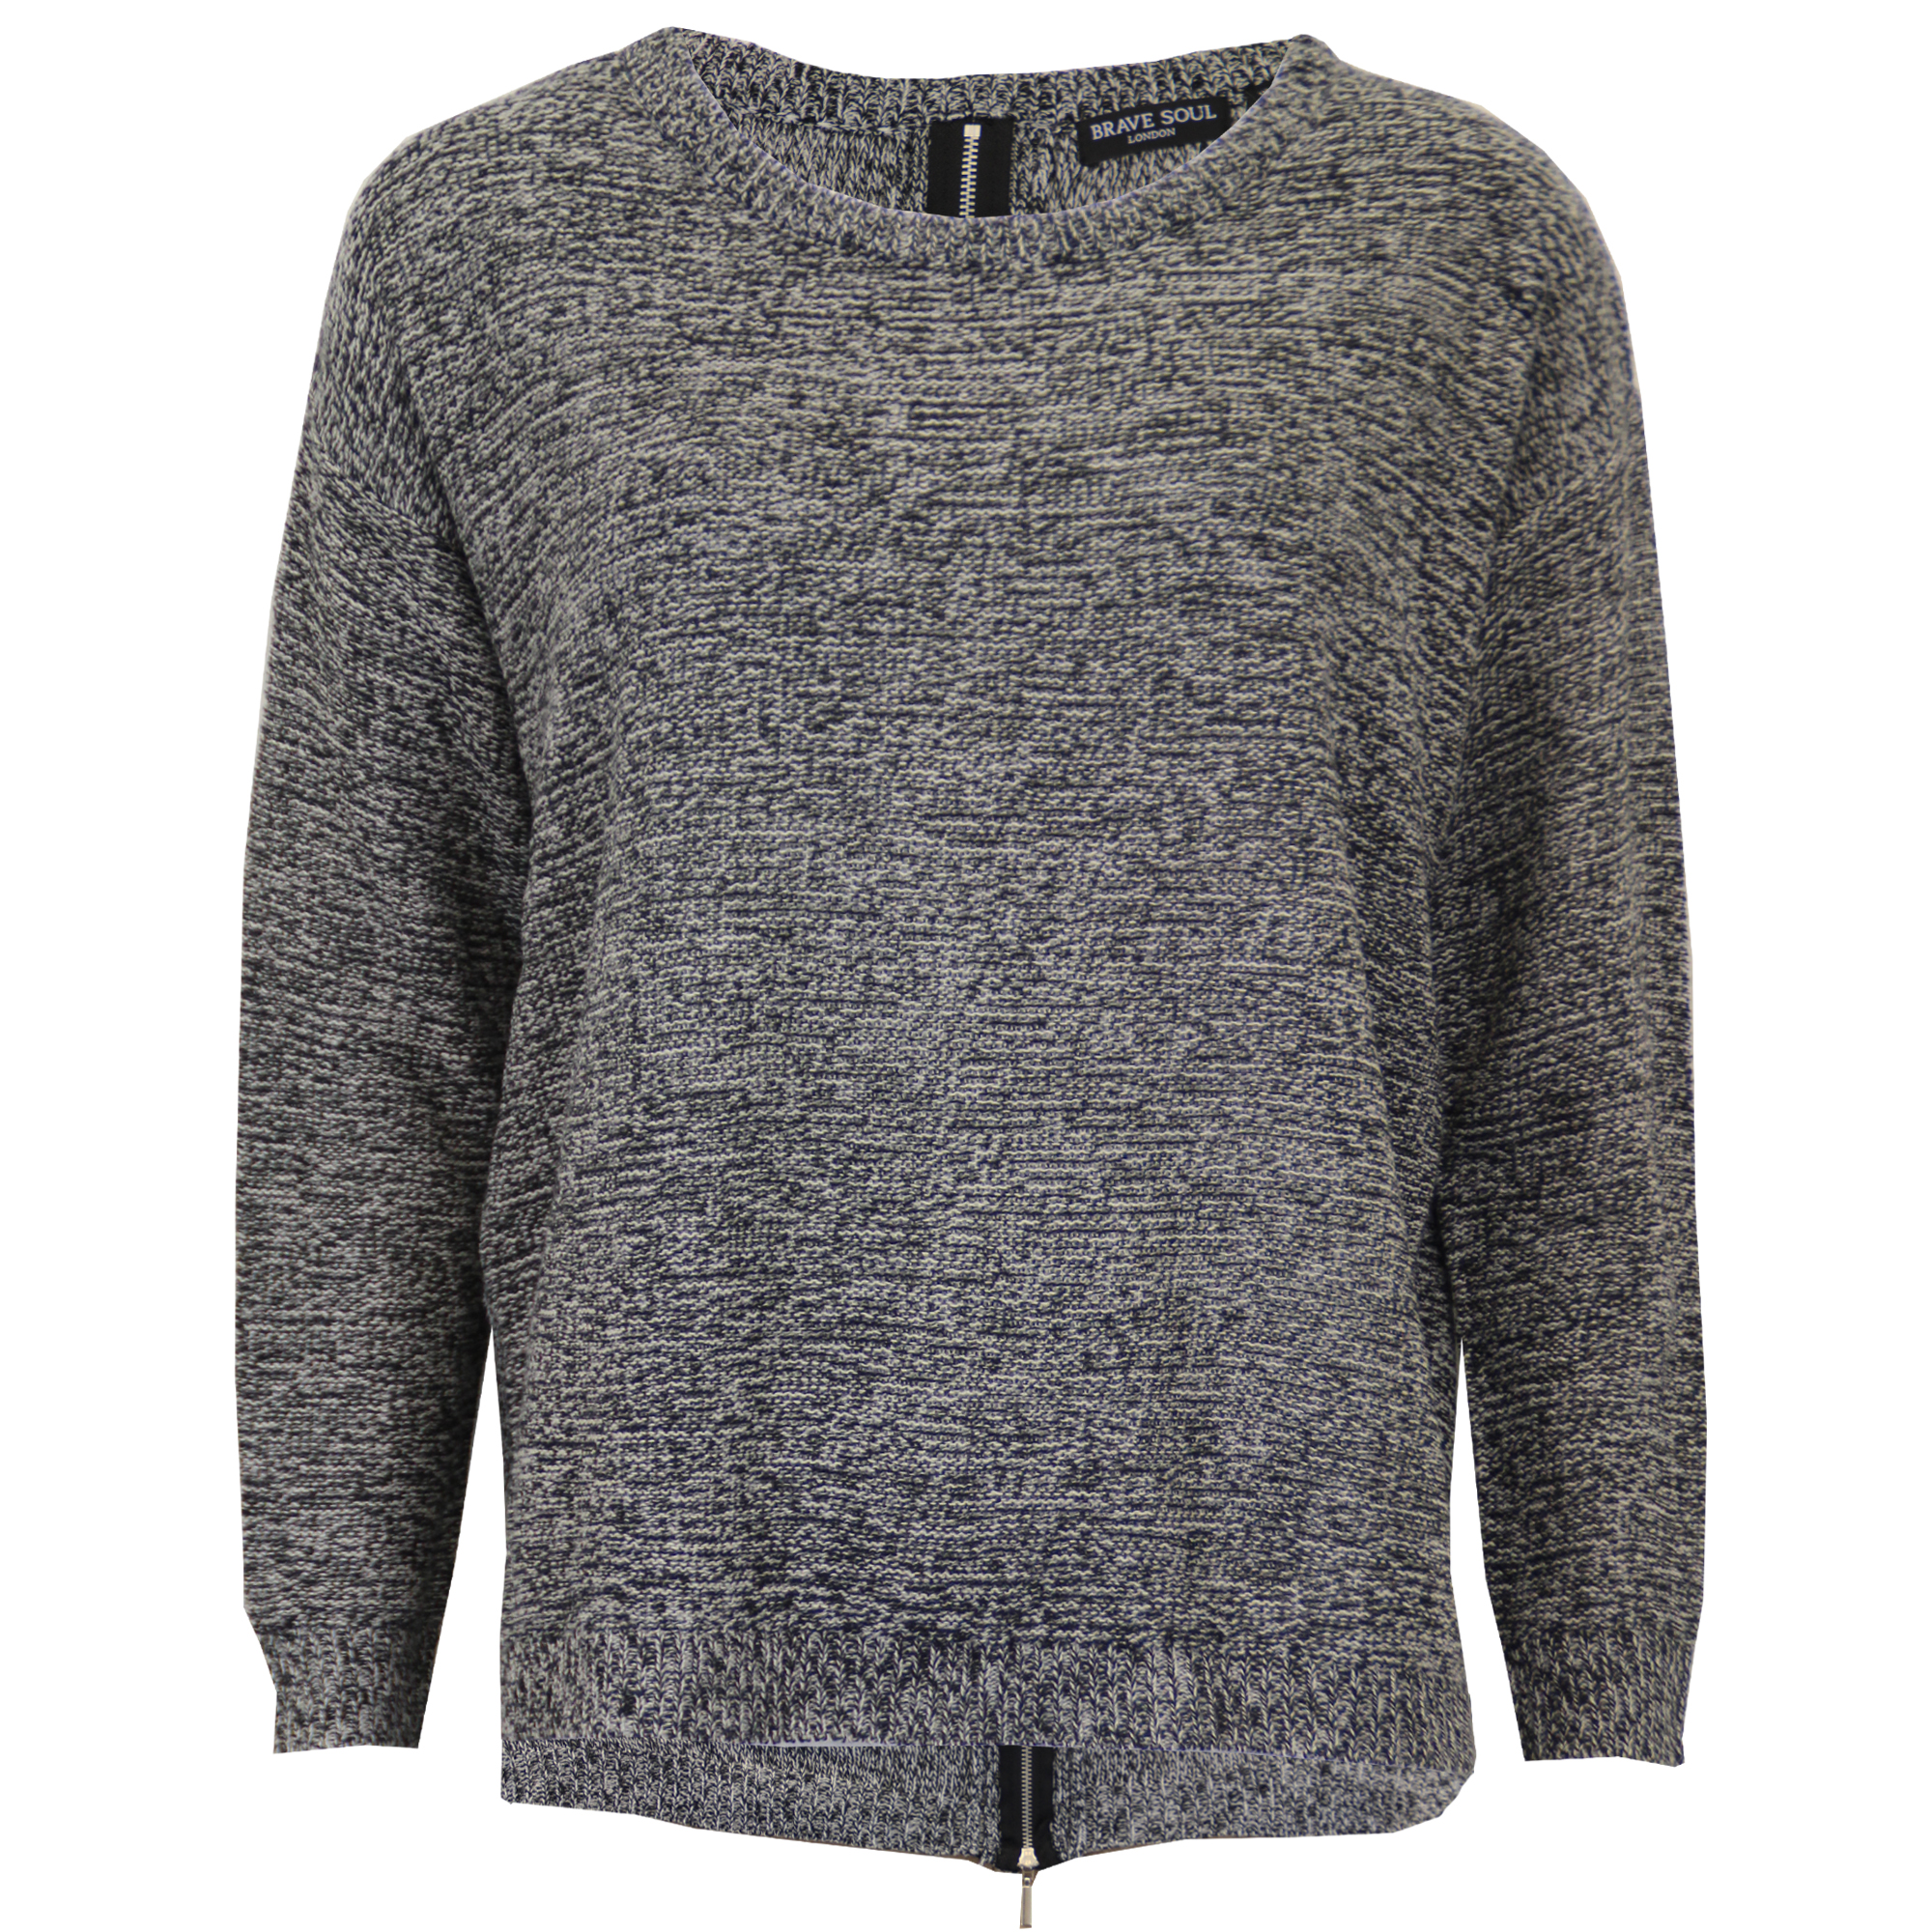 db9a8376a65 Details about Ladies Jumper Brave Soul Womens Knitted Sweater High Low Hem  Zip Baggy Winter